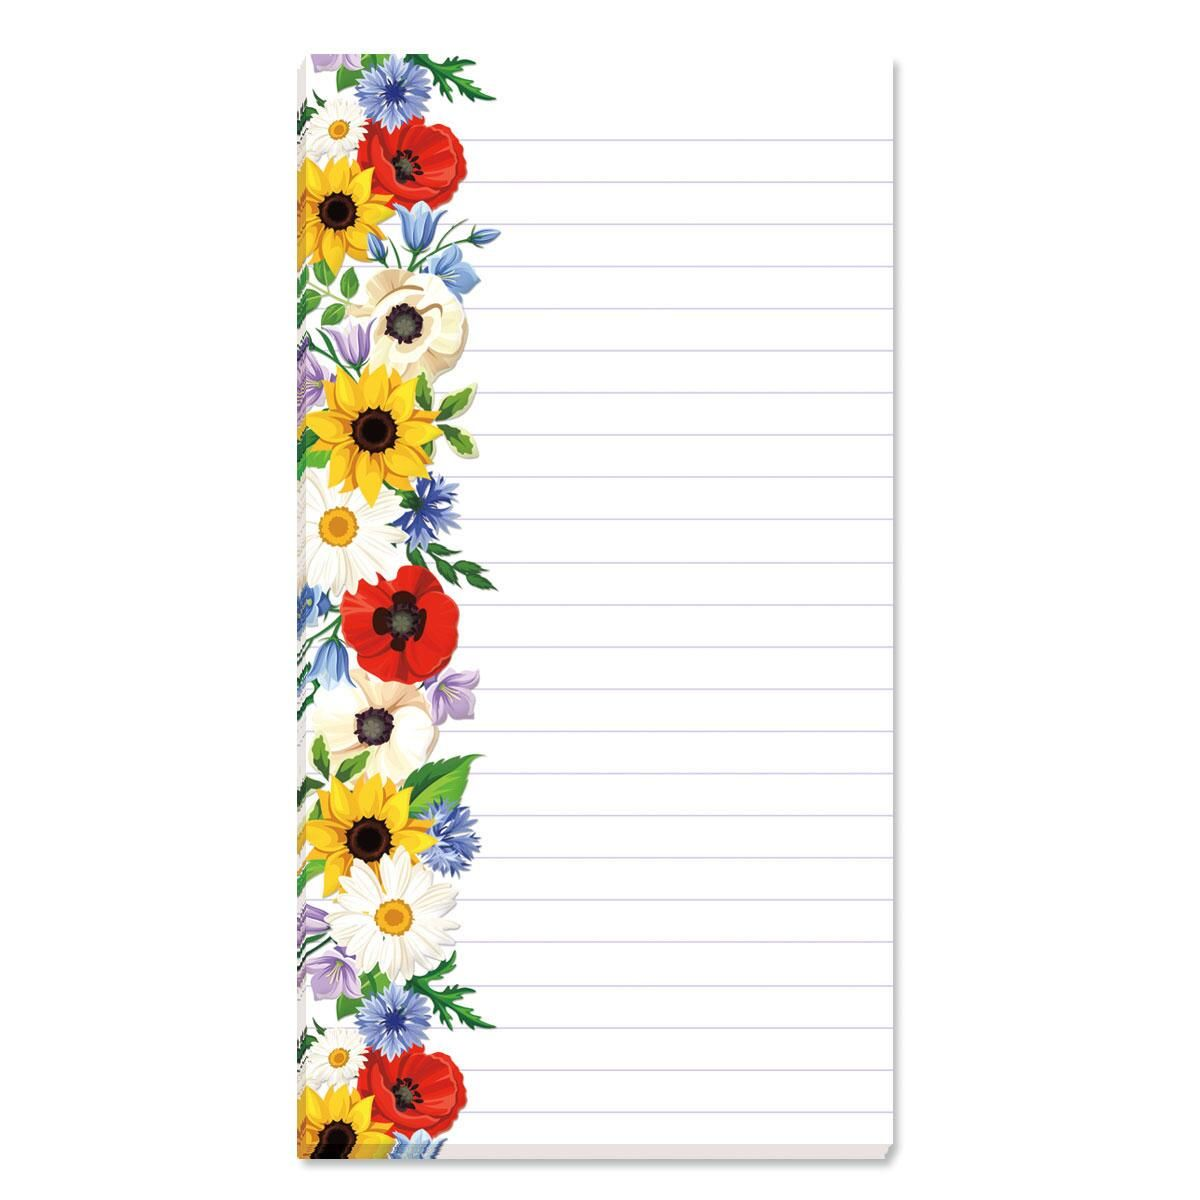 Poppies, Sunflowers & Daisies Lined Shopping List Pads - BOGO